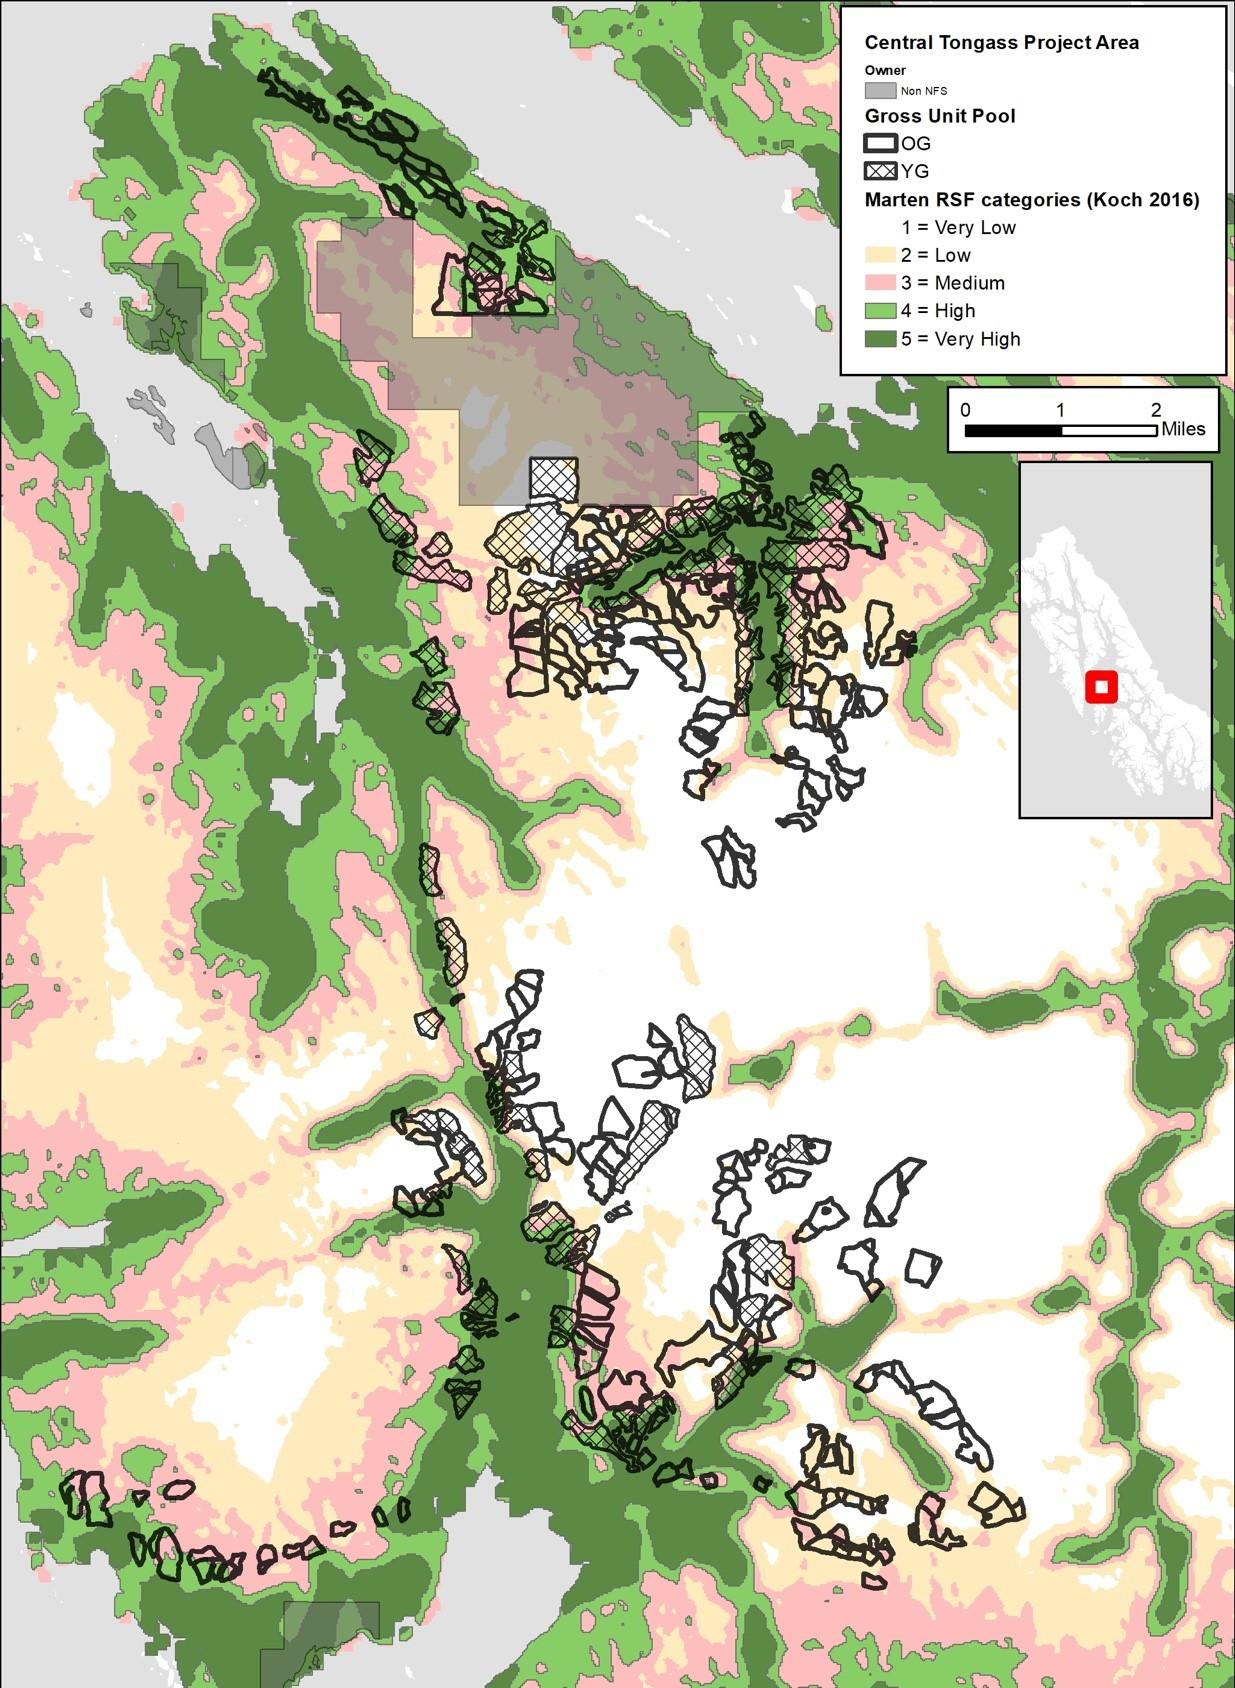 Central Tongass Project Area - Marten